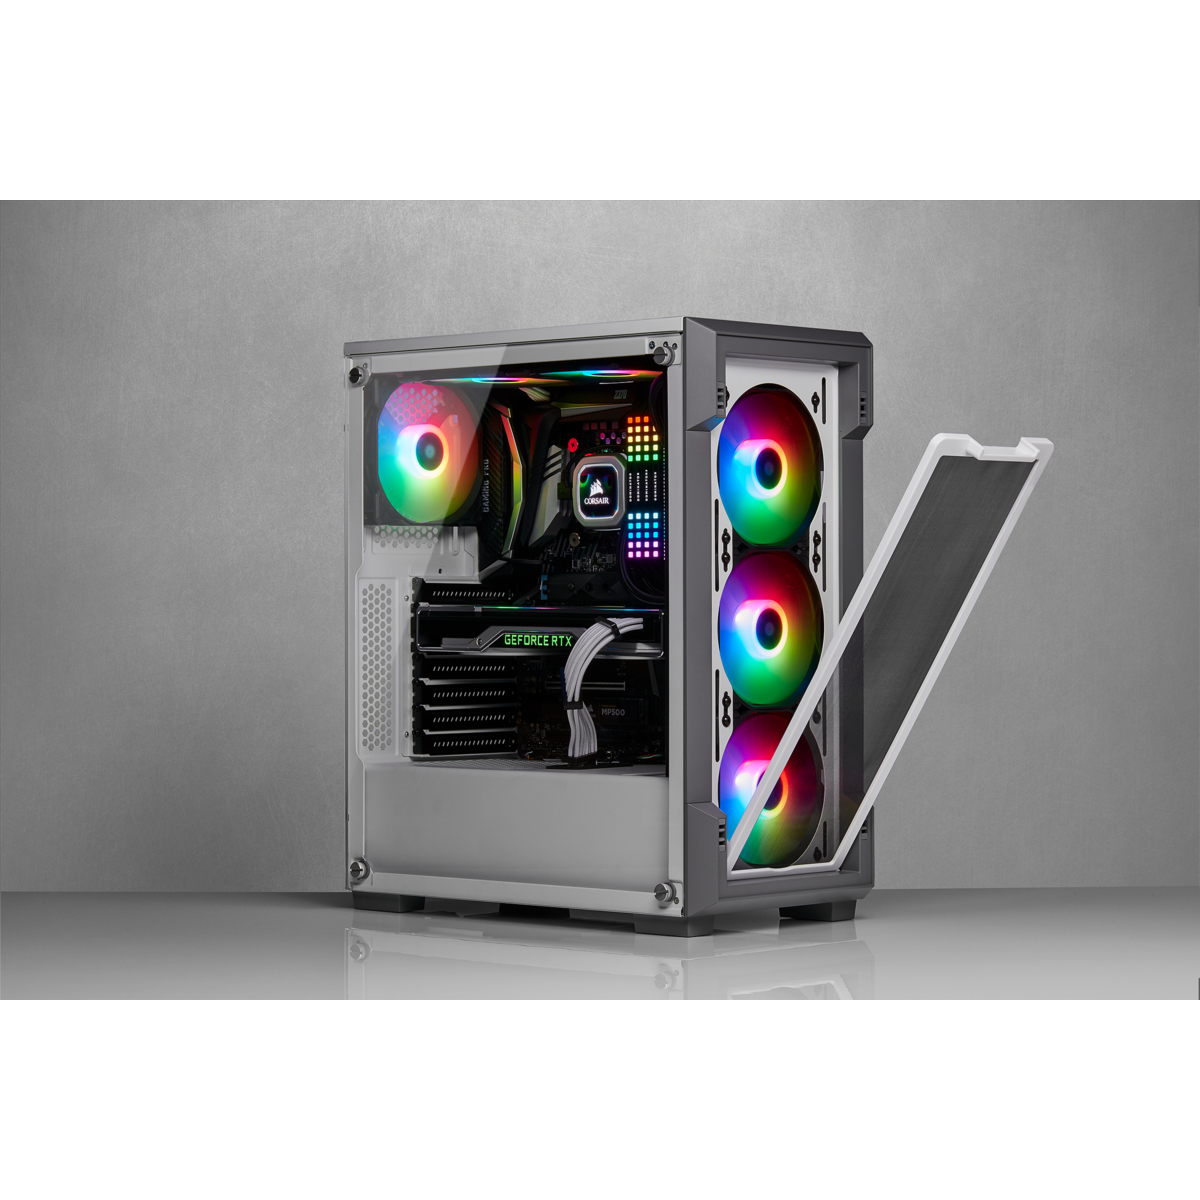 https://www.corsair.com/medias/sys_master/images/images/h0e/h97/9274331103262/-CC-9011174-WW-Gallery-220T-RGB-WHITE-20.png